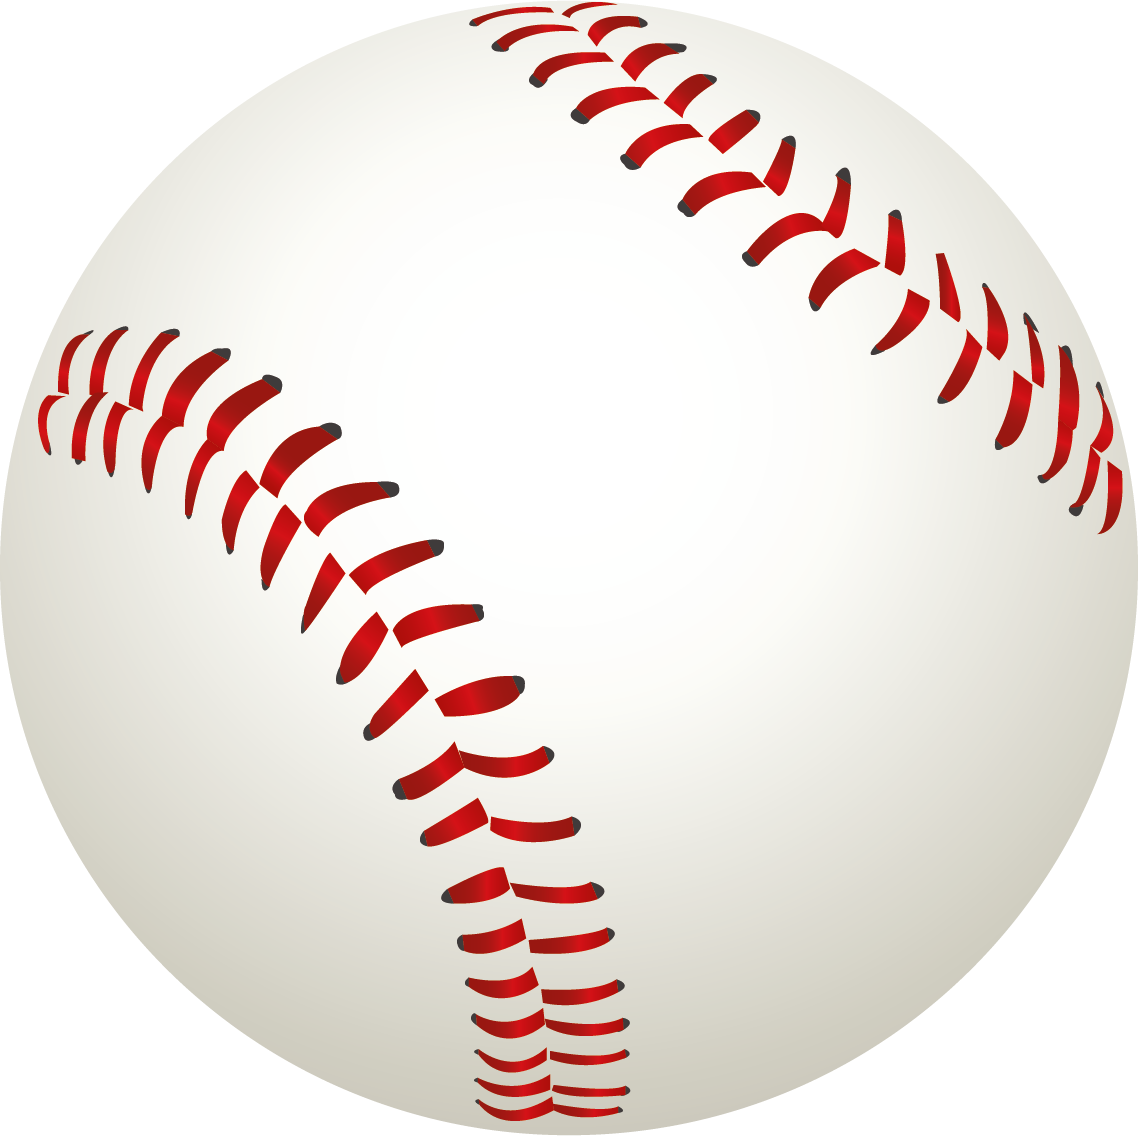 Baseball HD PNG-PlusPNG.com-1138 - Baseball HD PNG